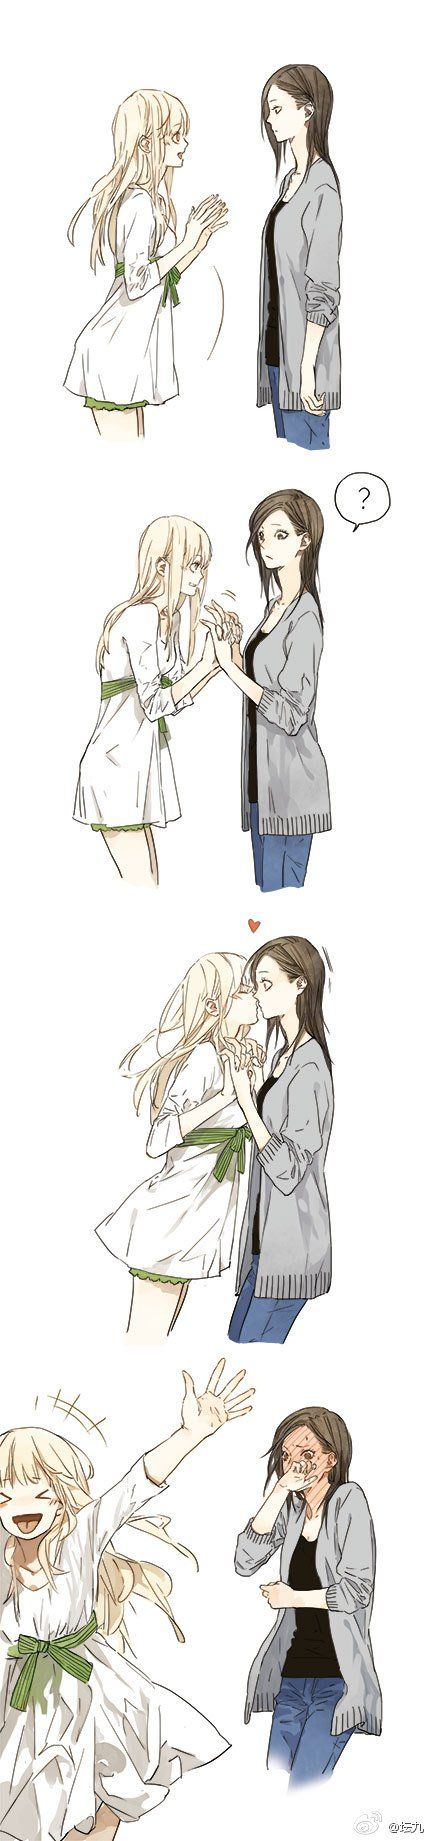 Tamen de Gushi: Chapter 1 - Page 19